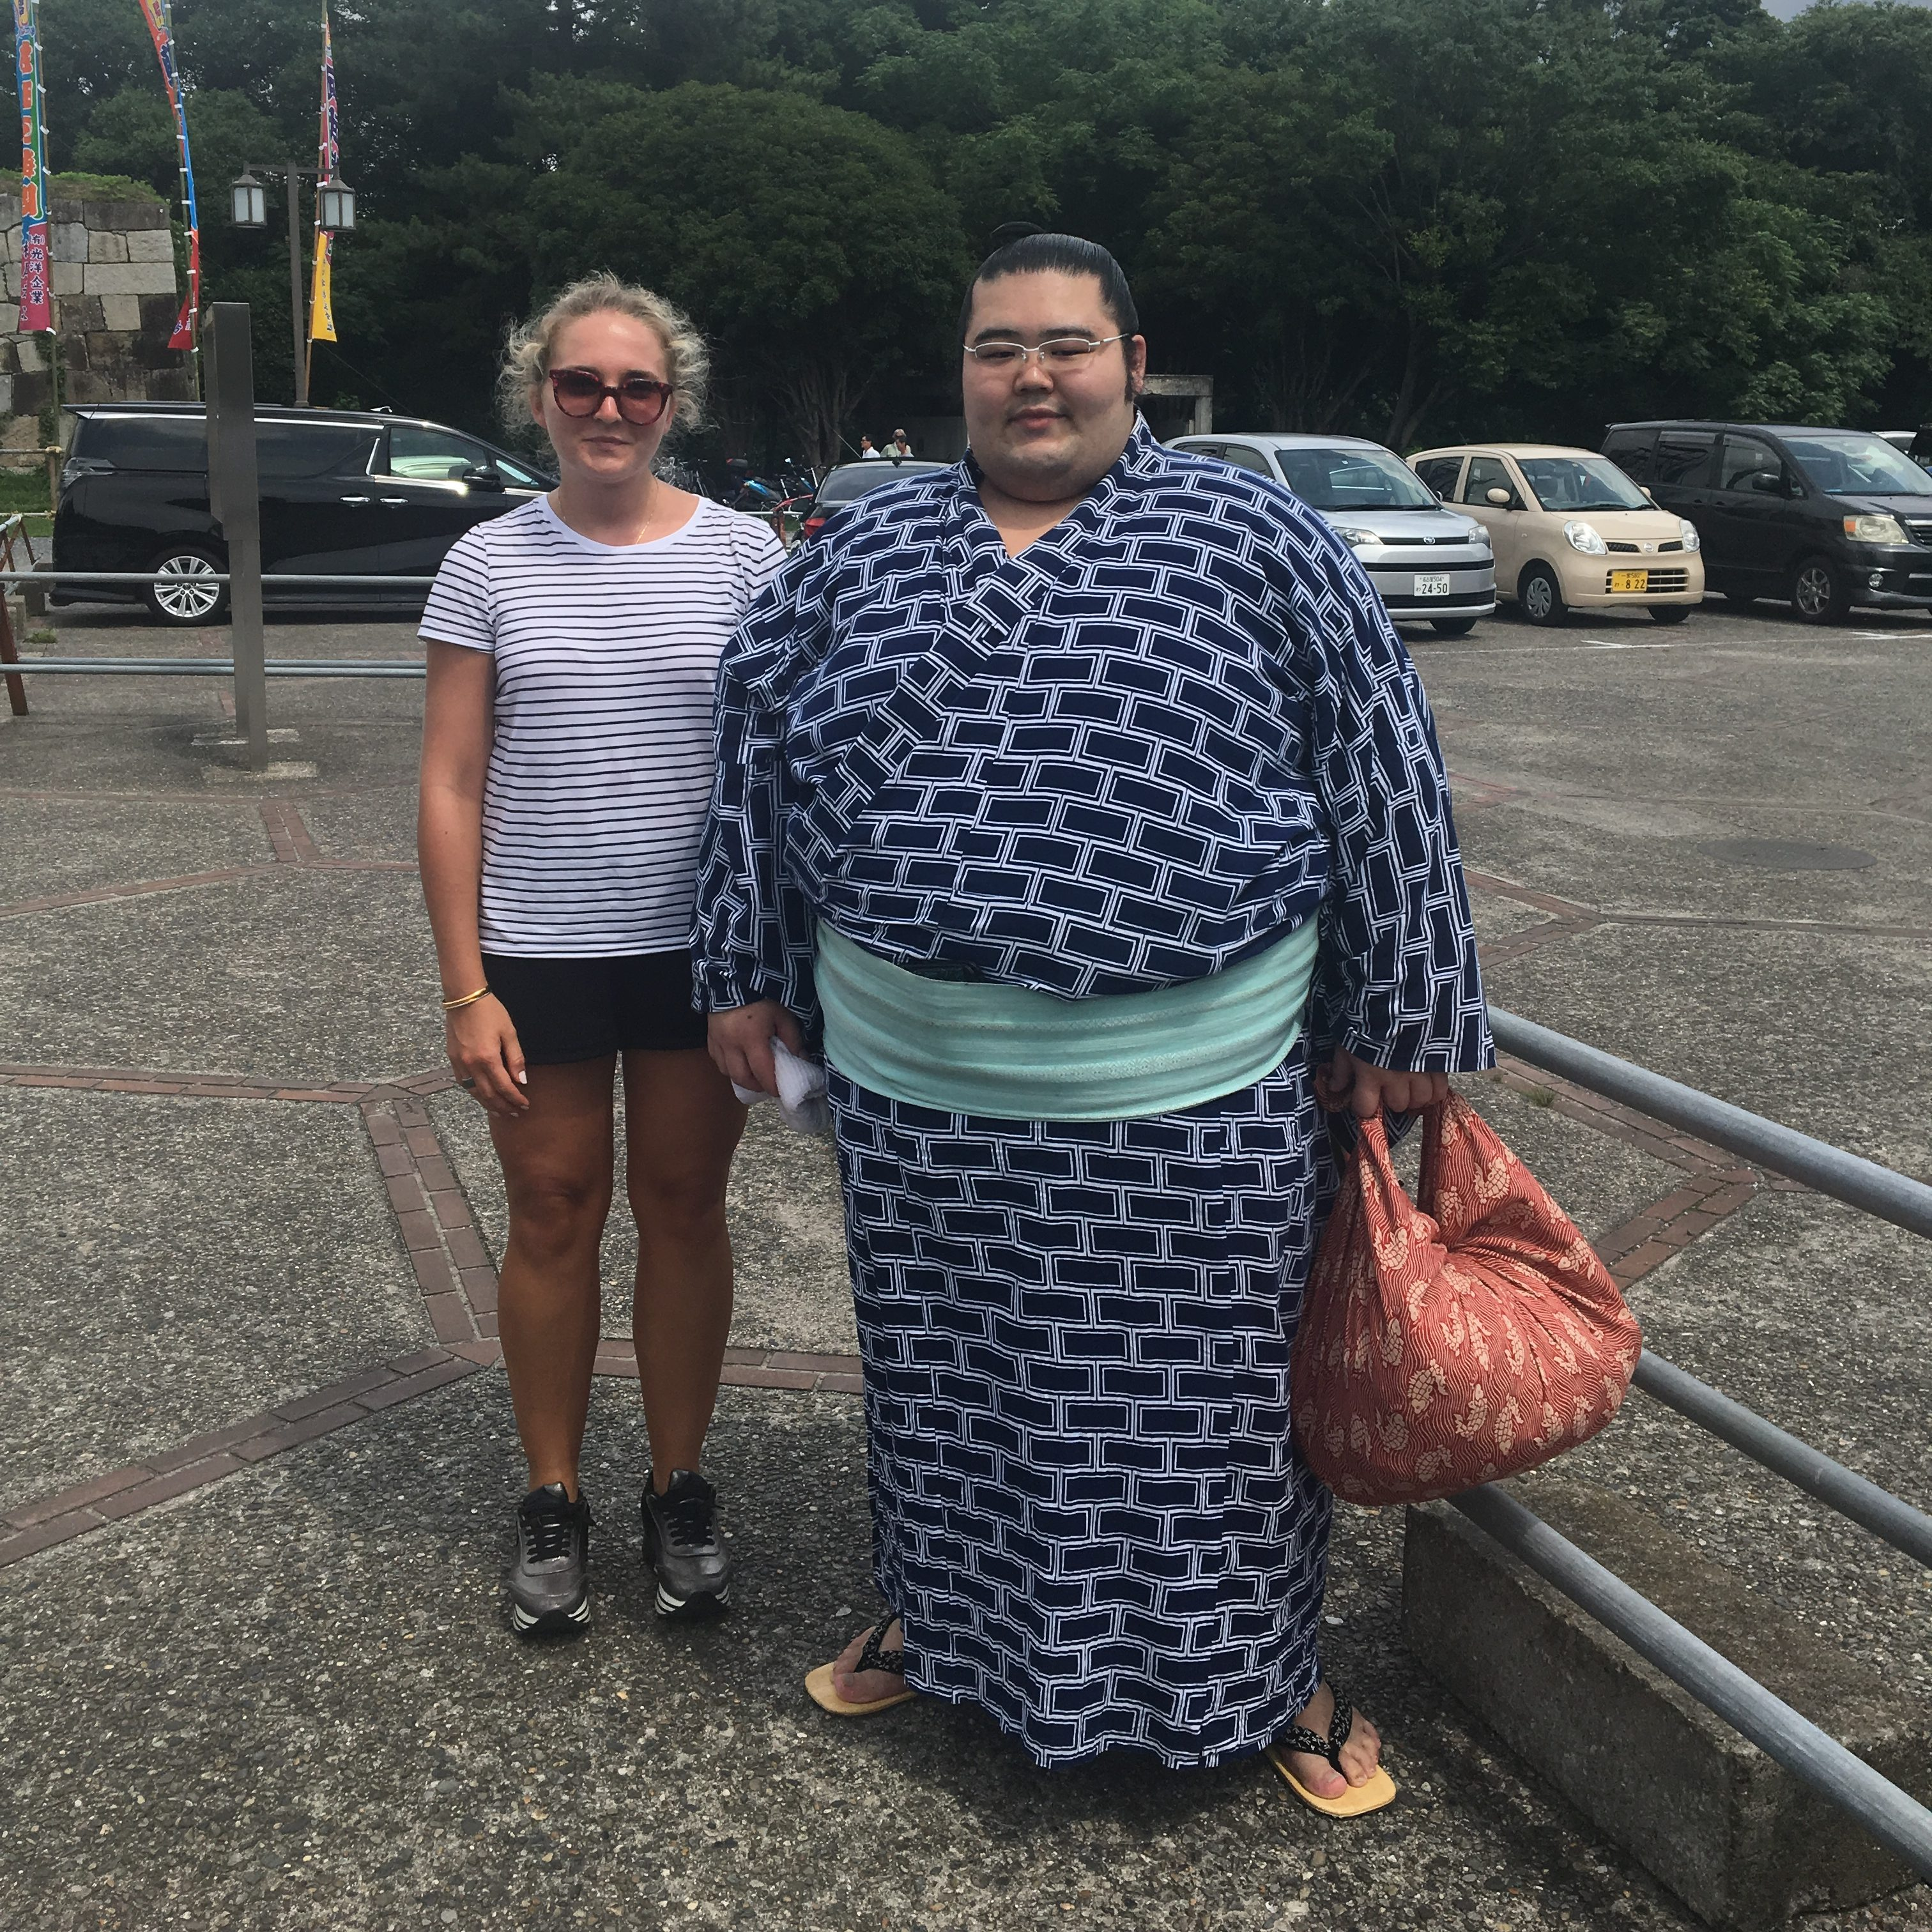 Picture of the author with a sumo wrestler